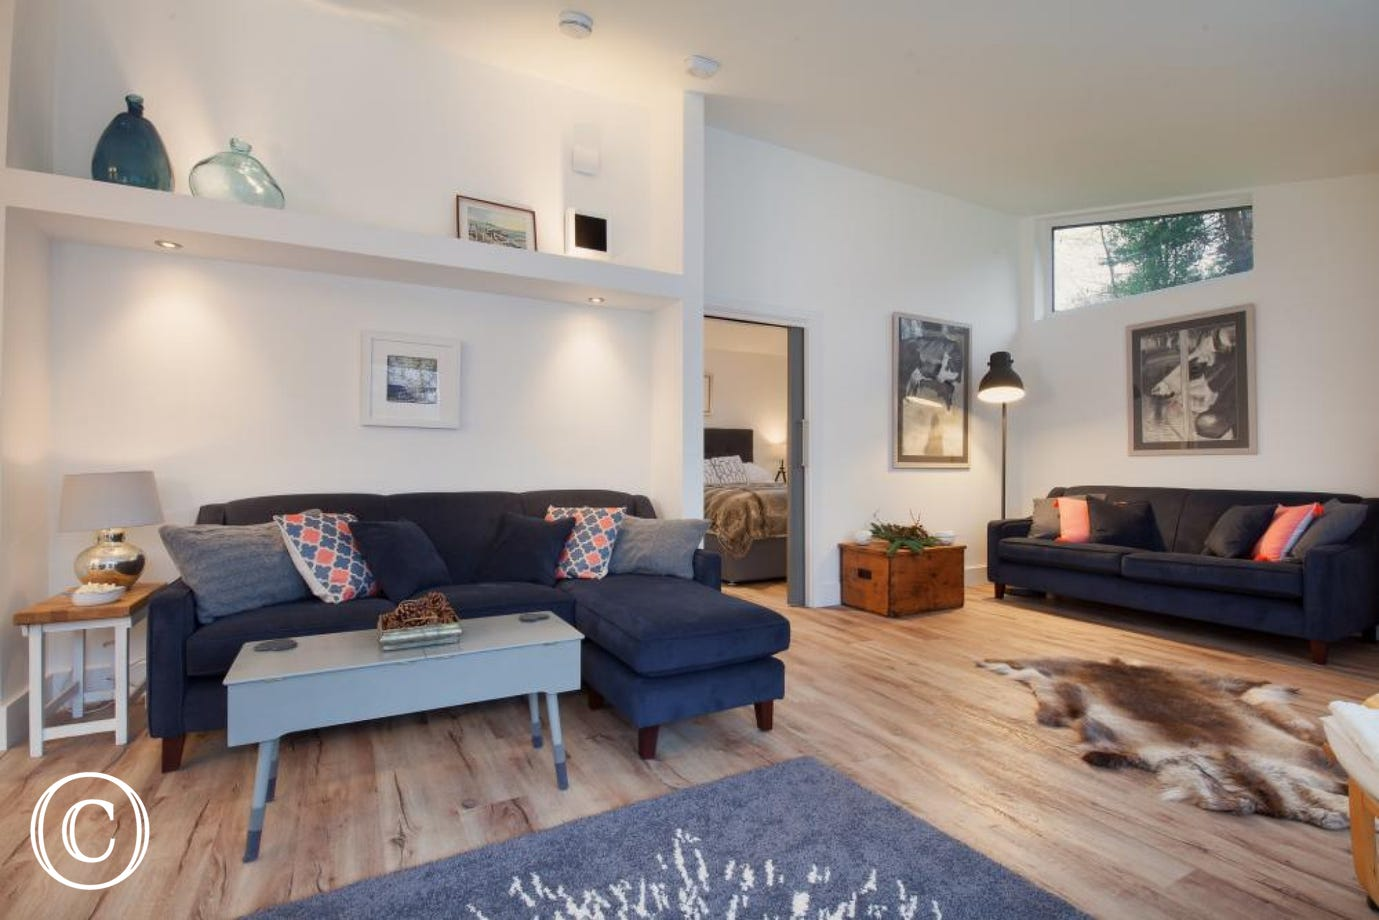 Hygge House, Shaldon - Living area (view 3)